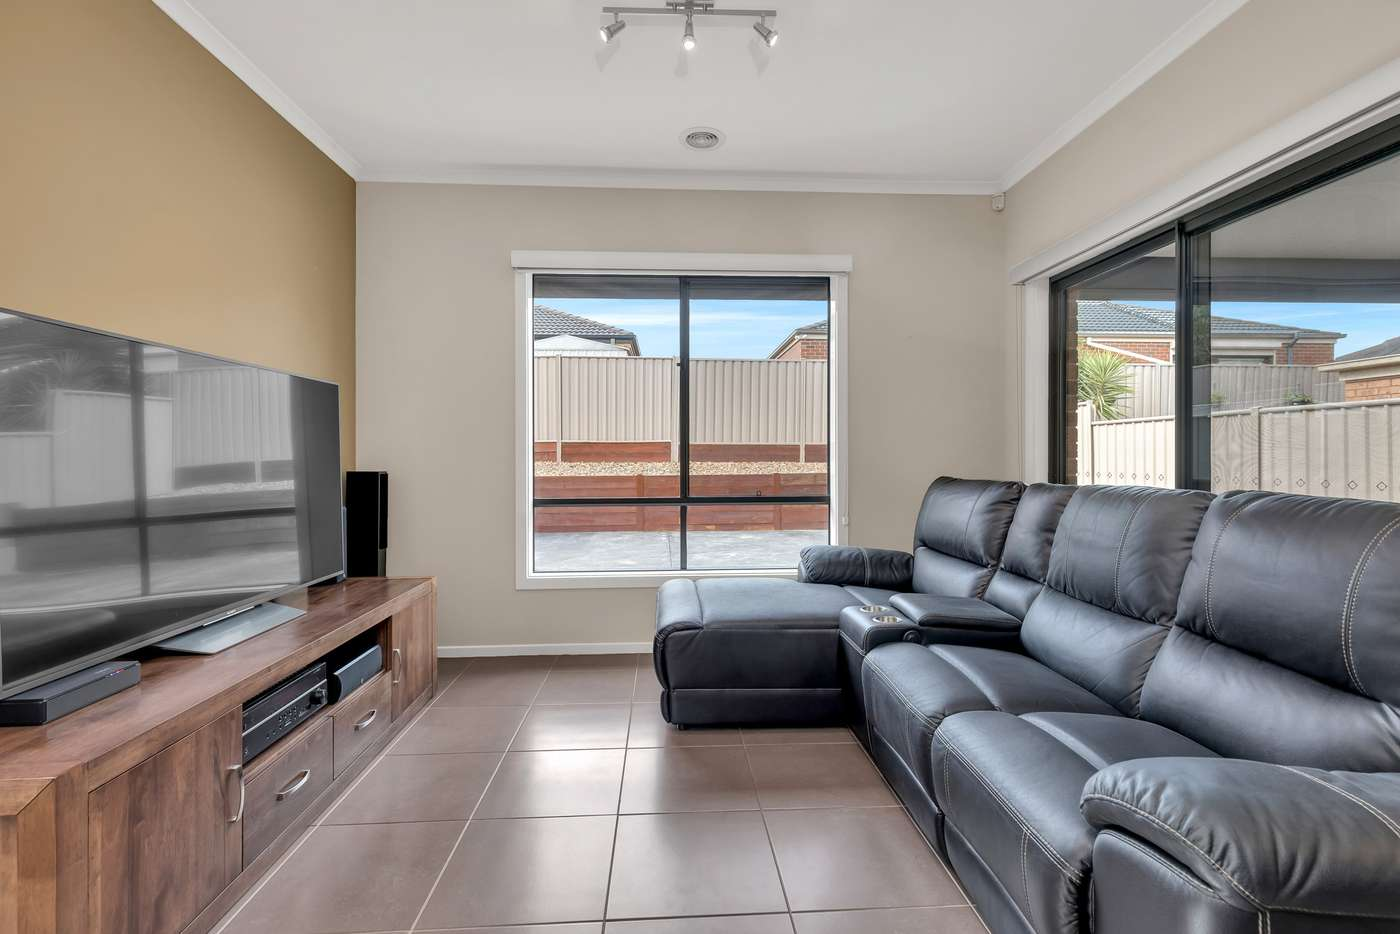 Fifth view of Homely house listing, 24 Hascombe Drive, Caroline Springs VIC 3023